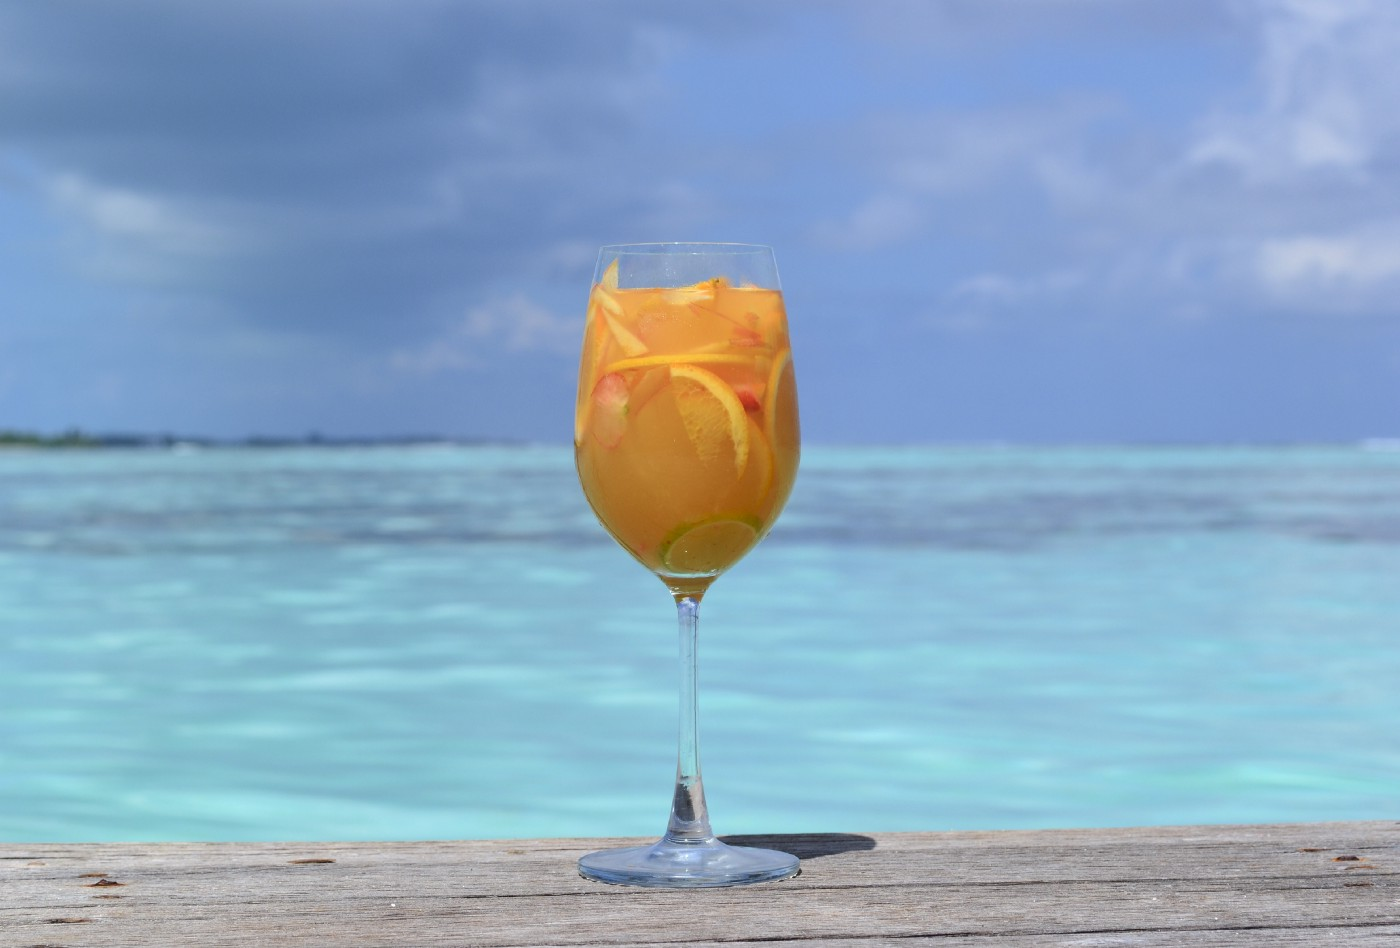 Photo of a fresh juice beverage in a wine glass with an ocean-view in the background